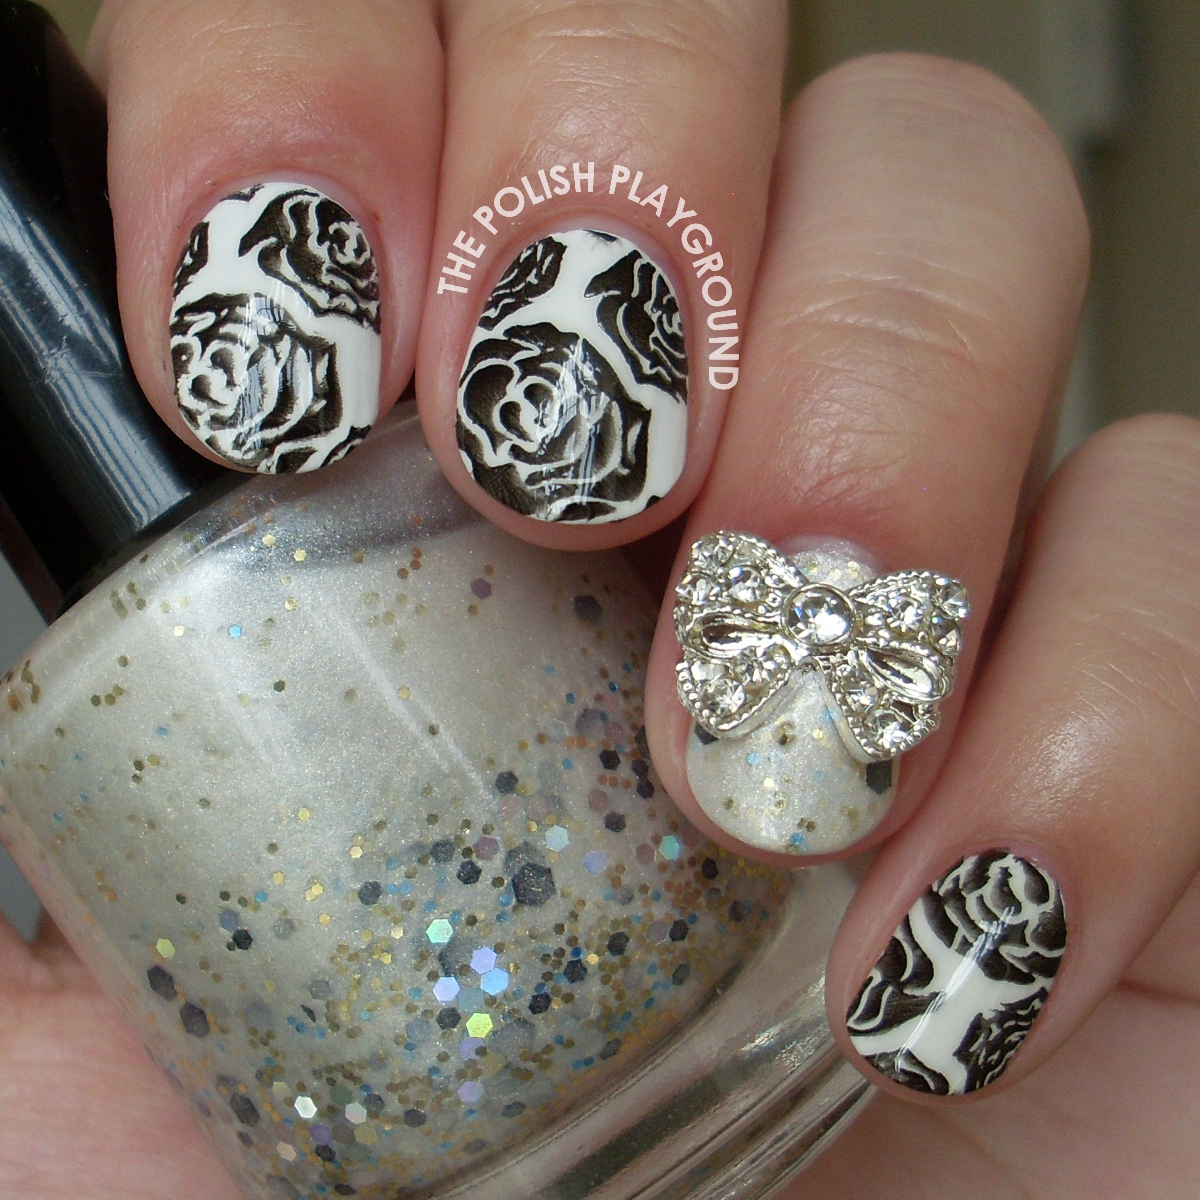 Blacken Roses Stamping Nail Art